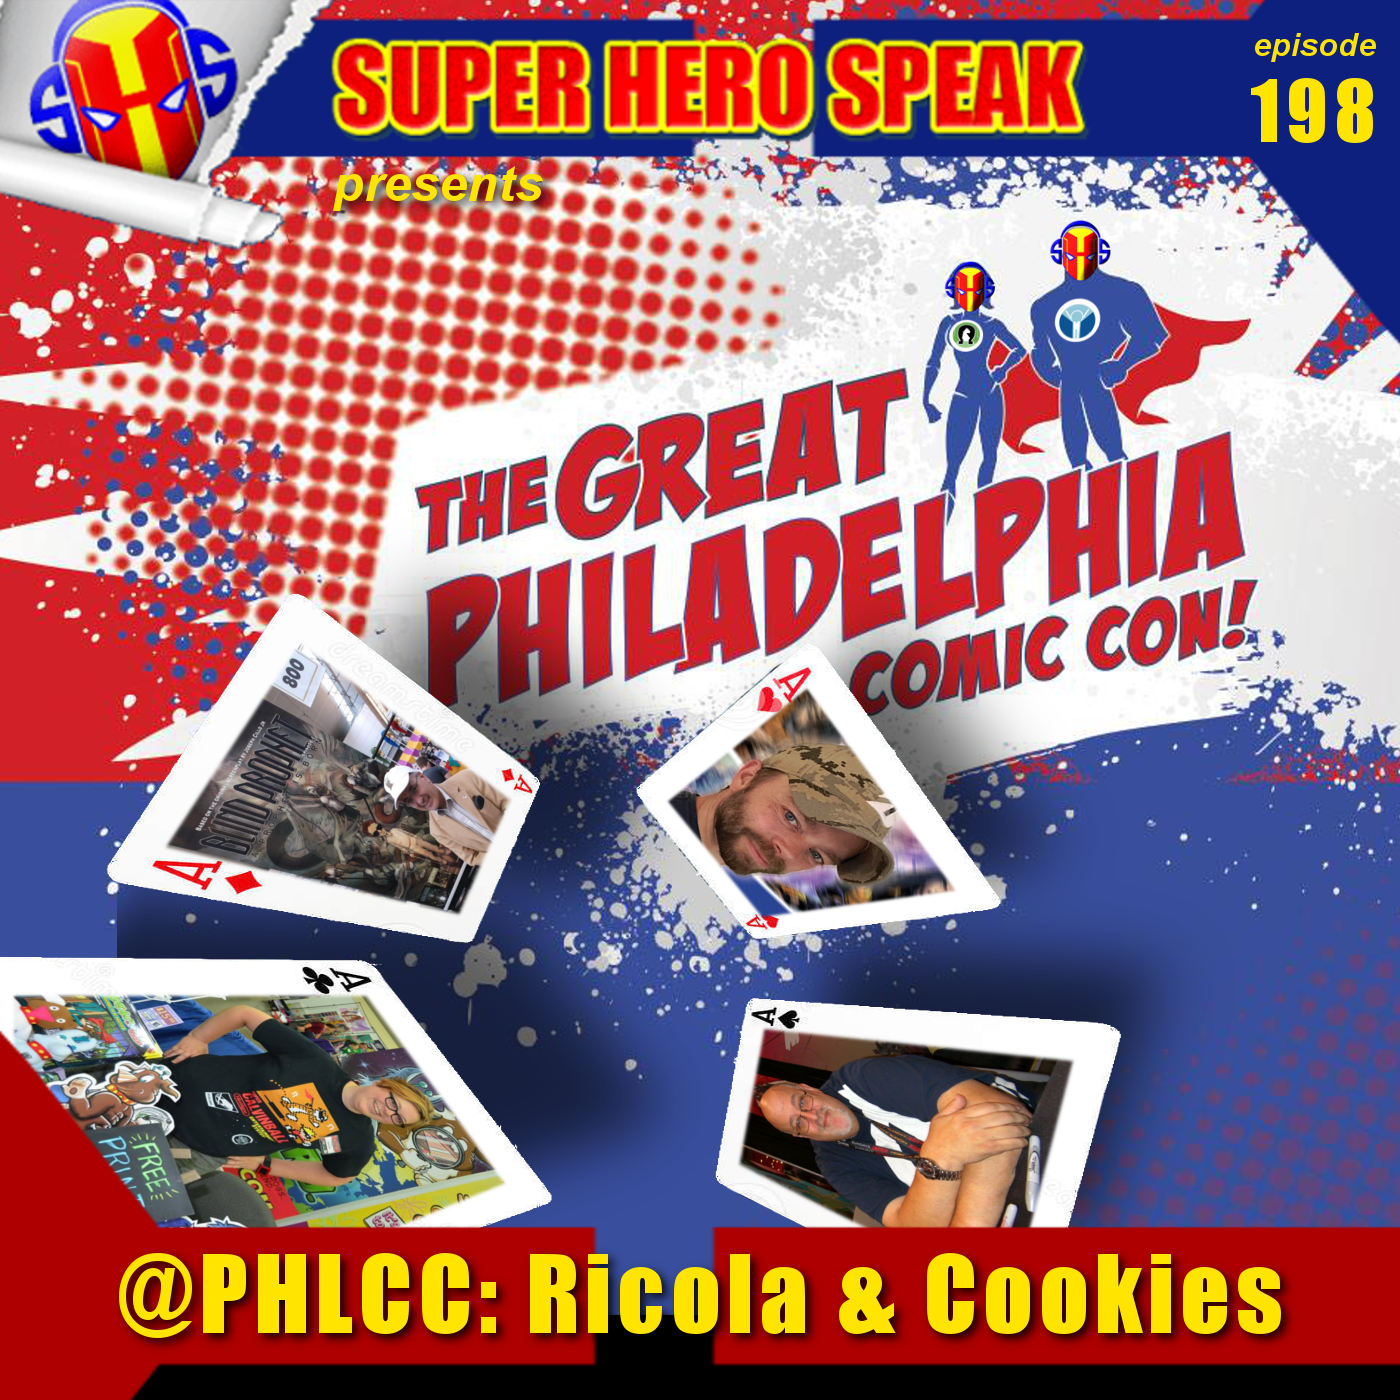 #198: @phlcc Ricola and Cookies